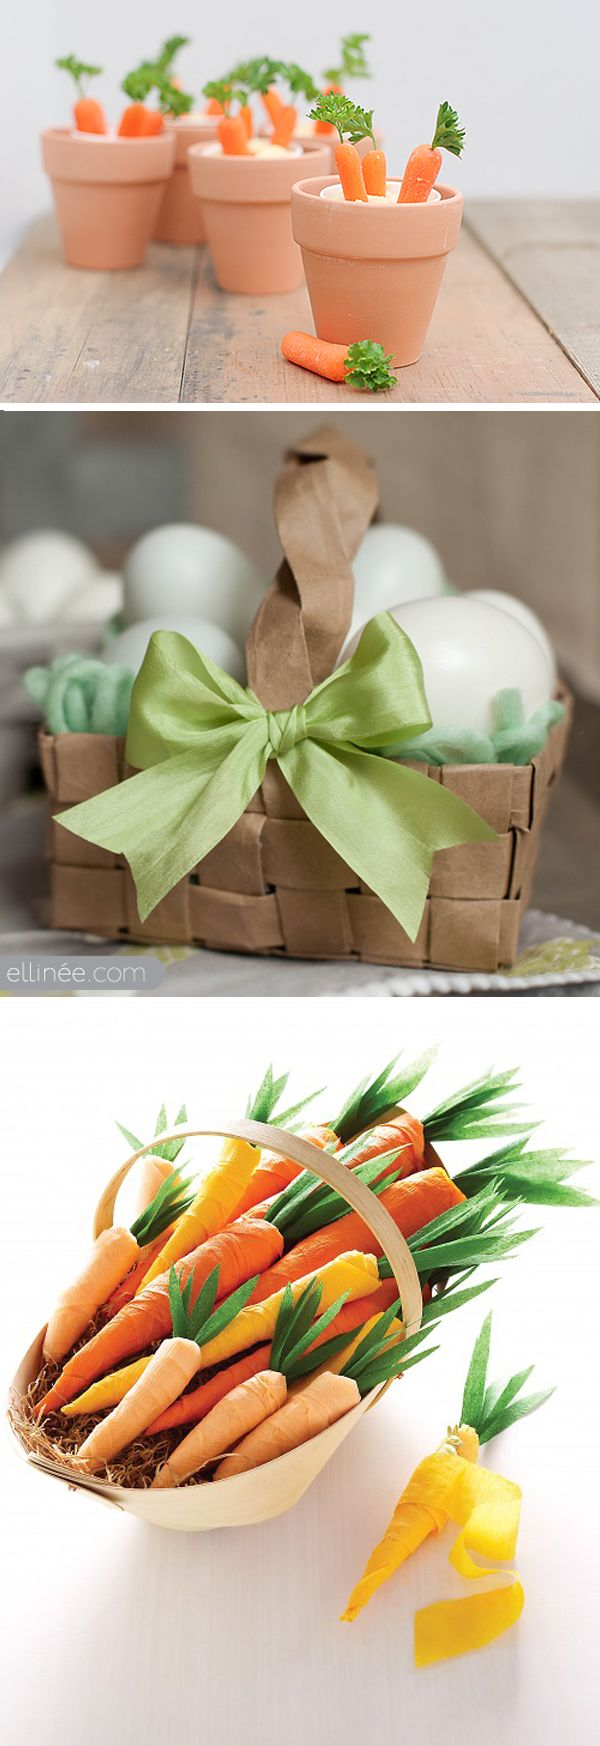 DIY Carrot Patches from Family Fun via Taste tand Tell //  DIY Grocery Bag Easter Basket from Ellinée //  DIY Crepe Paper Carrots from Martha Stewart